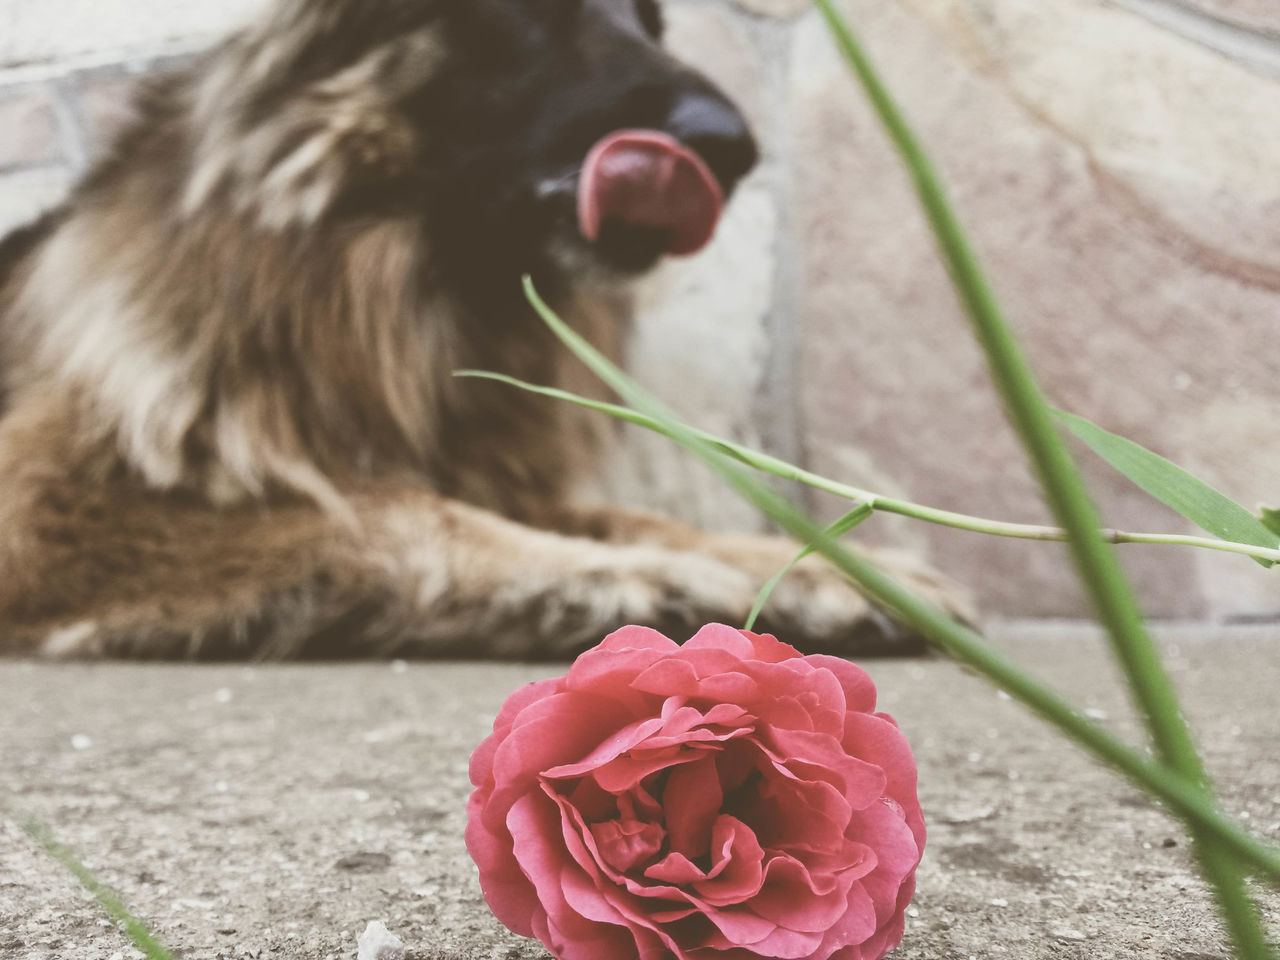 flower, petal, nature, close-up, fragility, no people, day, outdoors, one animal, domestic animals, animal themes, freshness, flower head, pets, mammal, beauty in nature